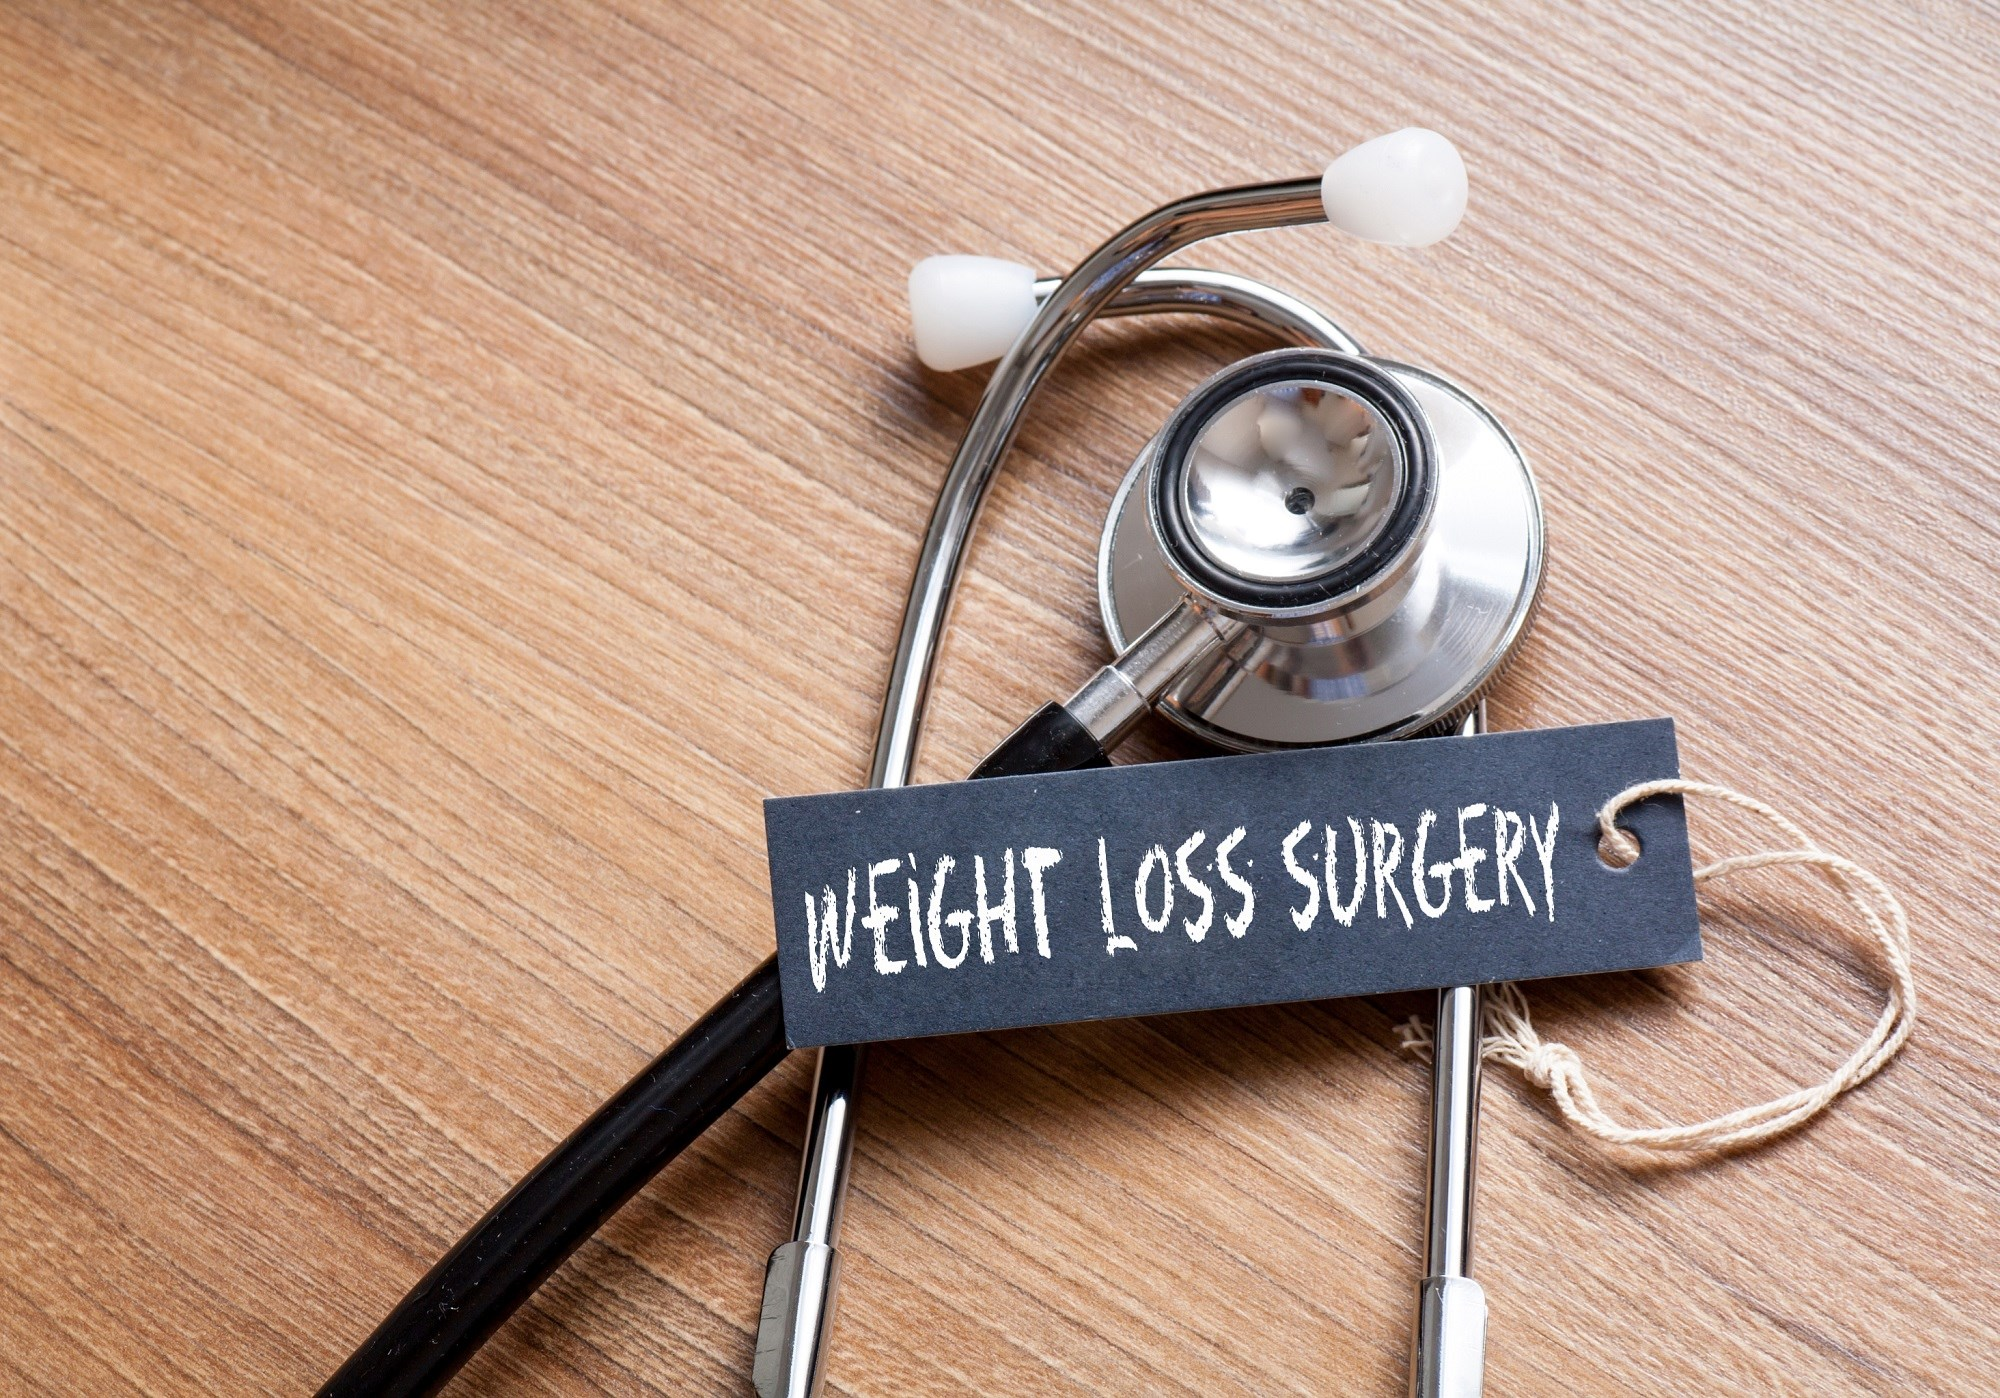 A large proportion of the U.S. population seems to have negative attitudes toward weight-loss surgery.